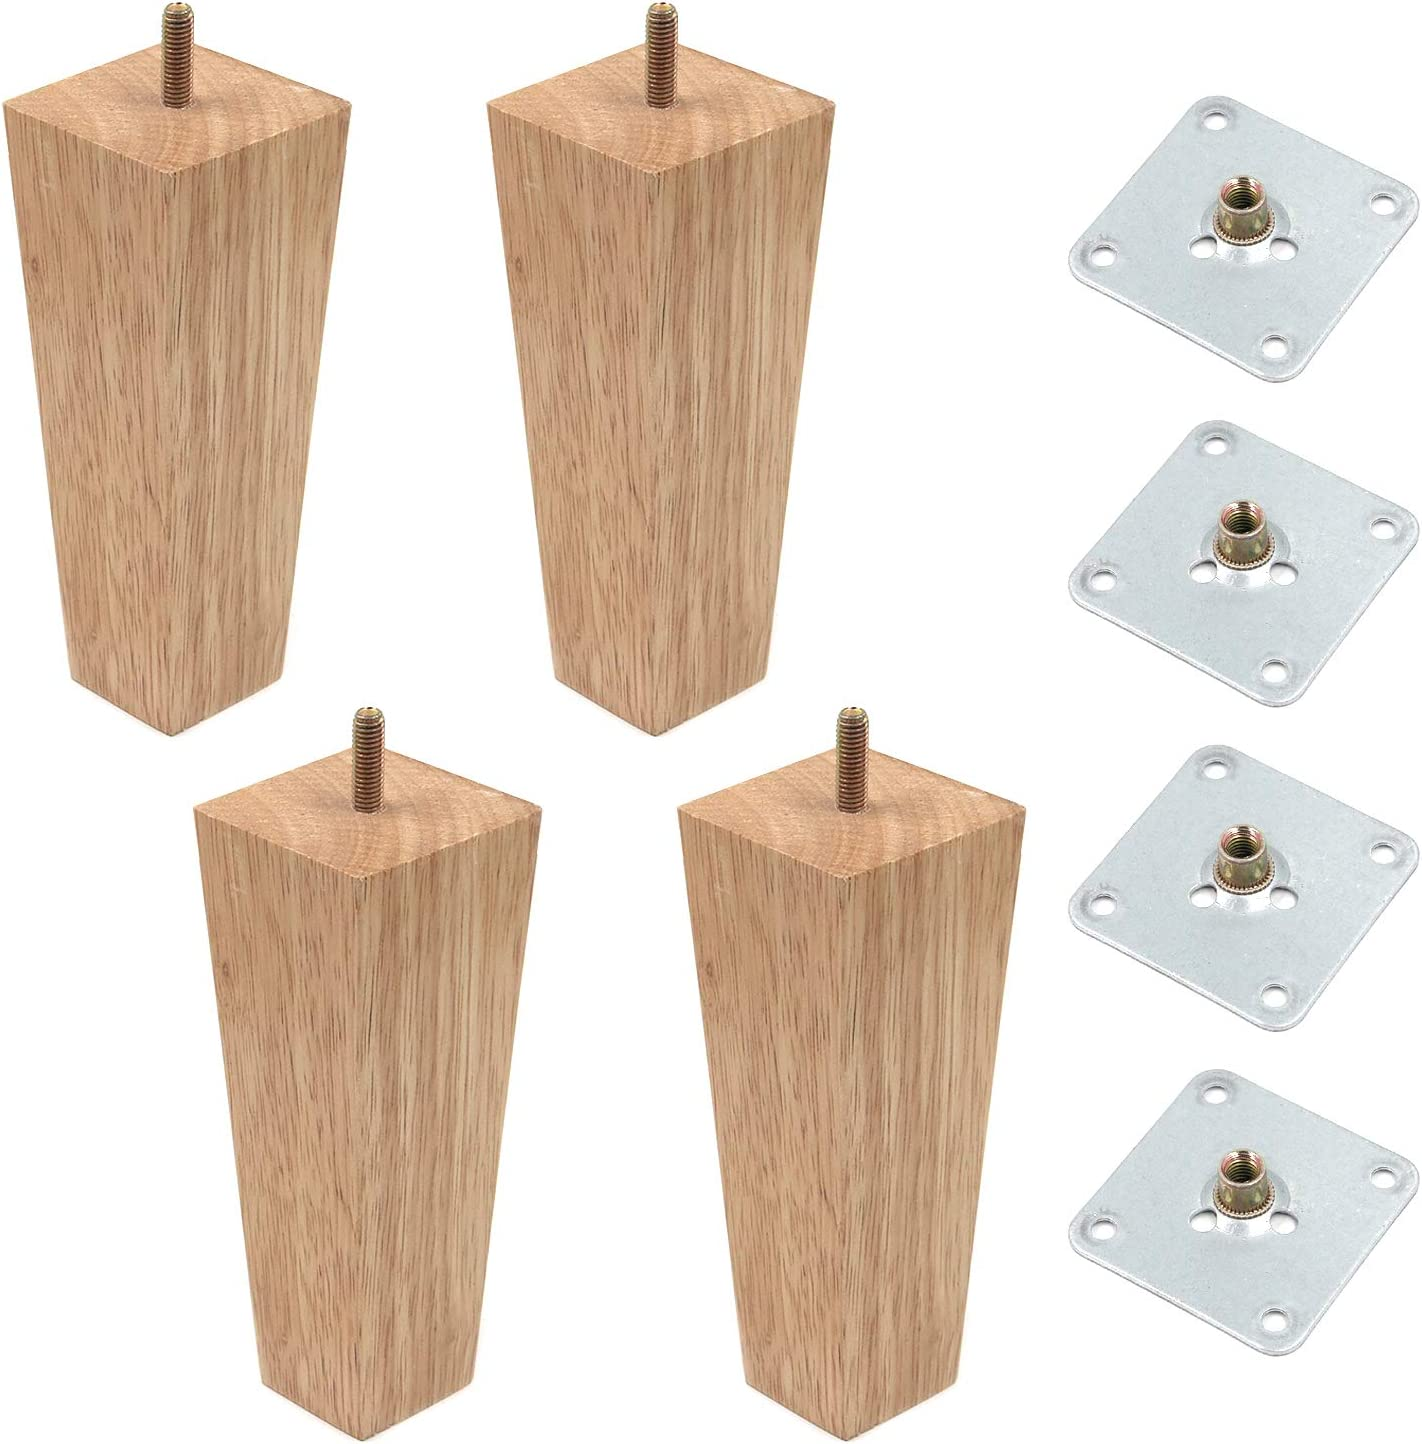 MY MIRONEY Square Furniture Challenge the lowest price of Japan Max 83% OFF ☆ Wood Legs Solid Taper